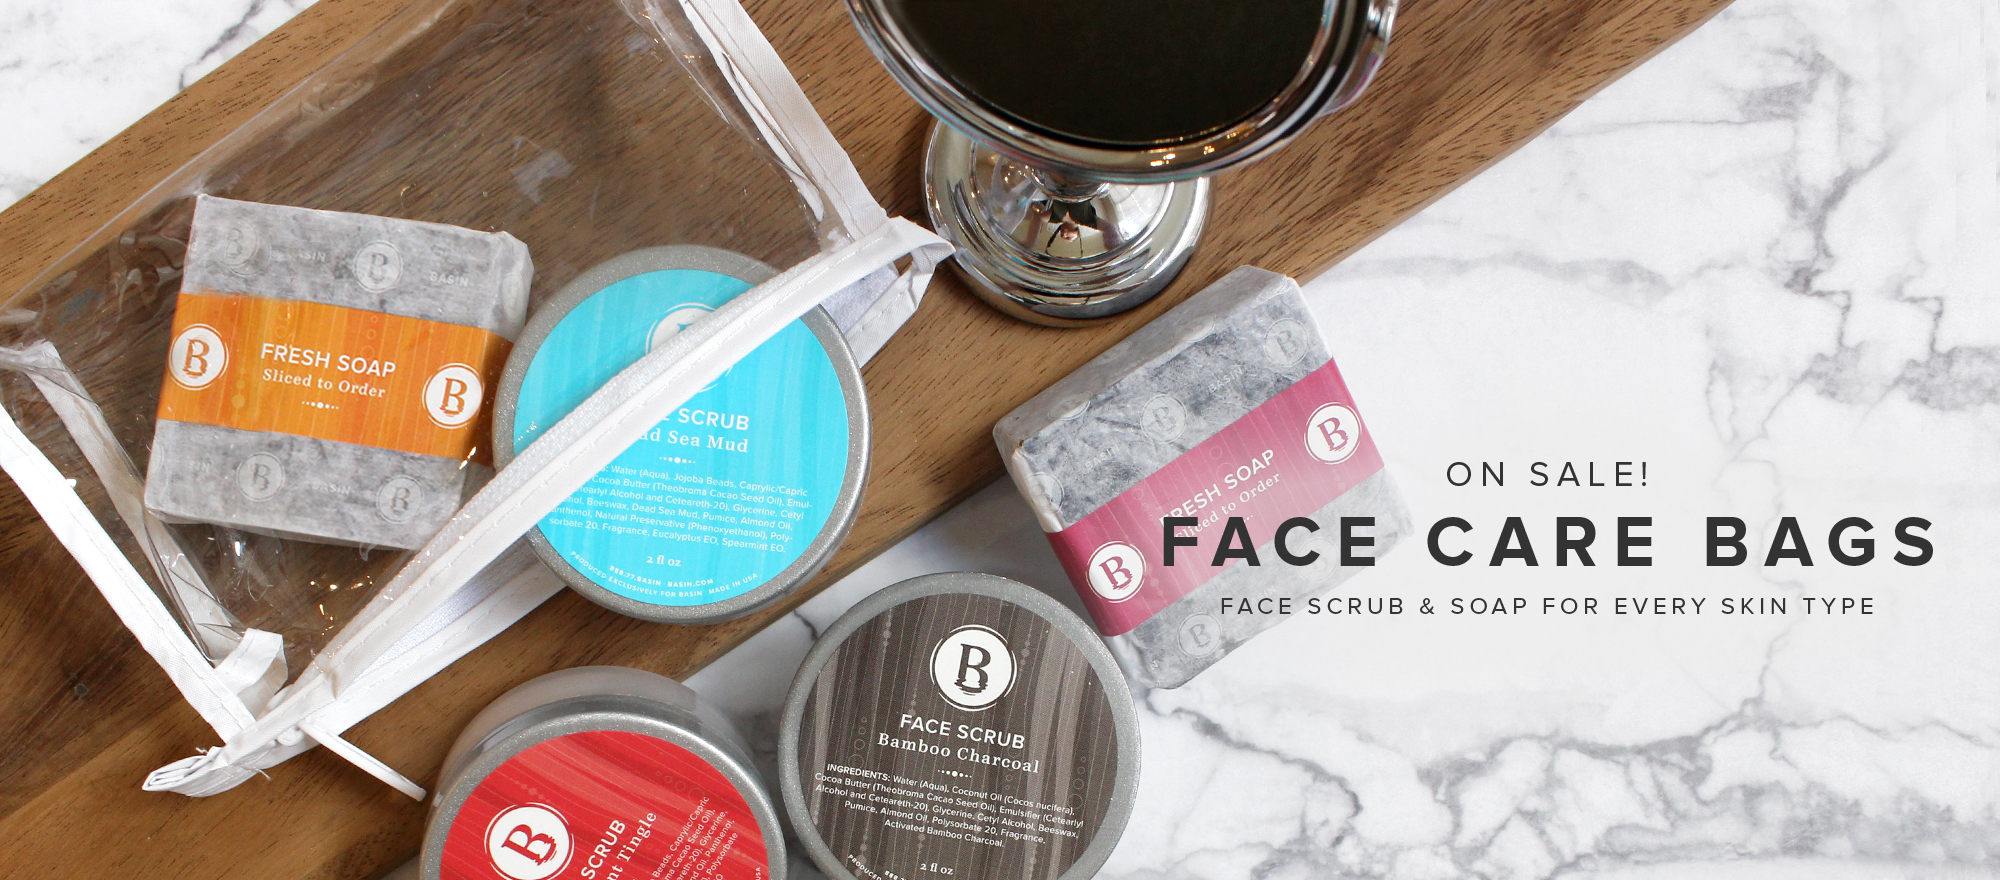 Face Care Bags